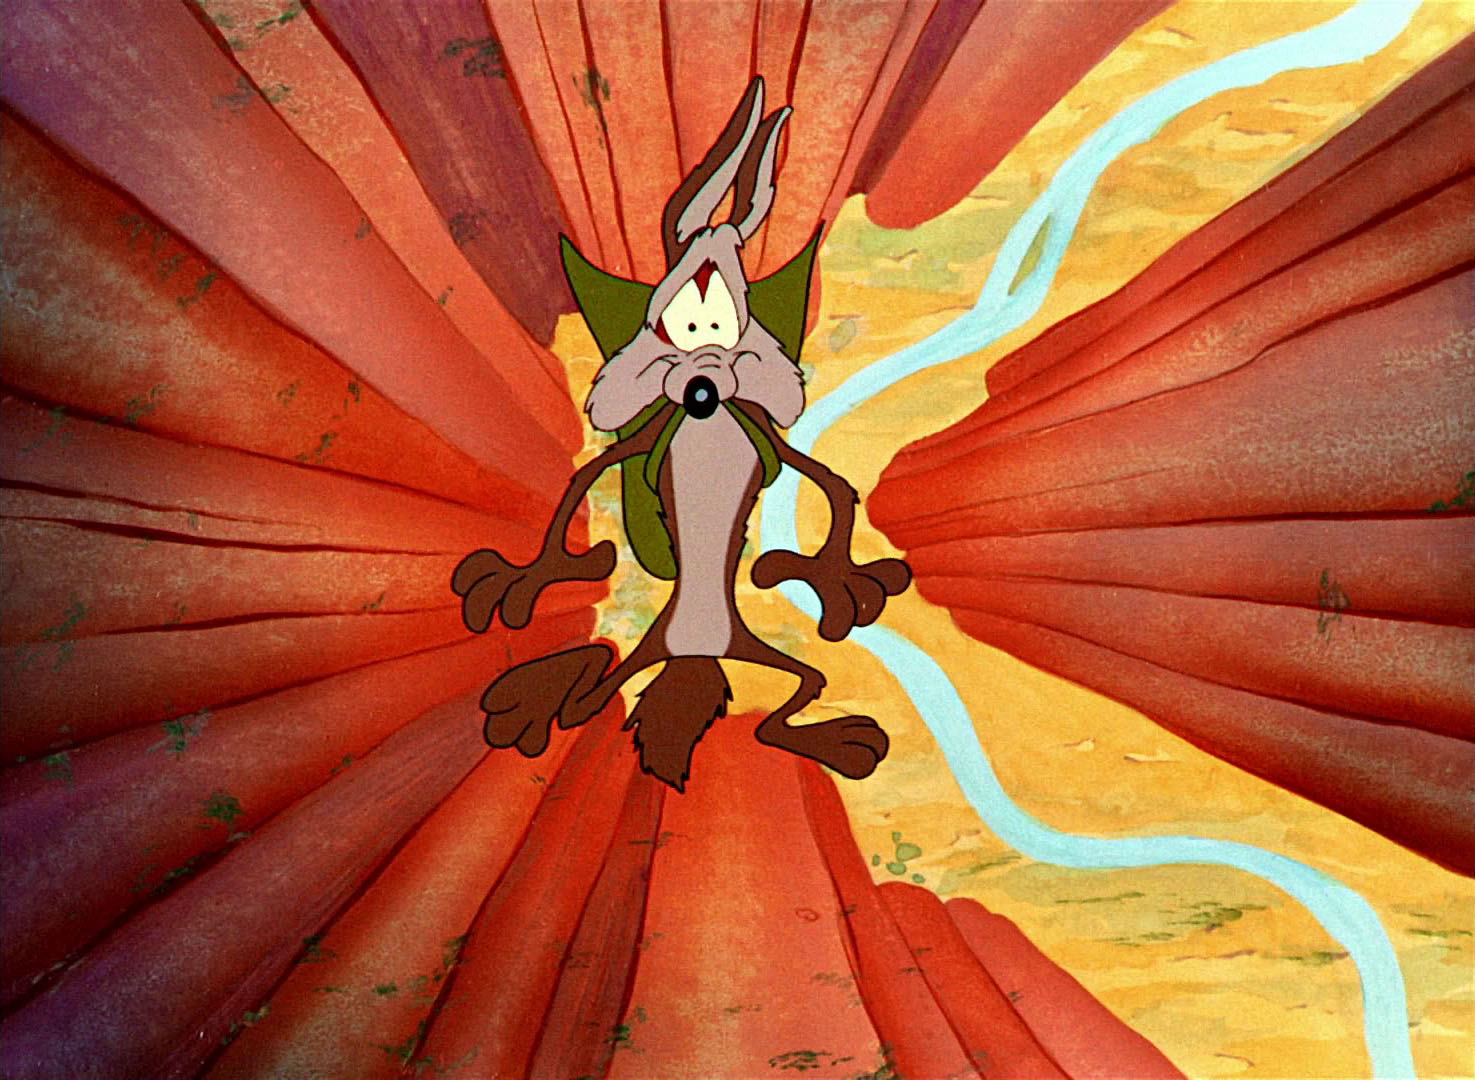 Wile E Coyote High Quality Background on Wallpapers Vista